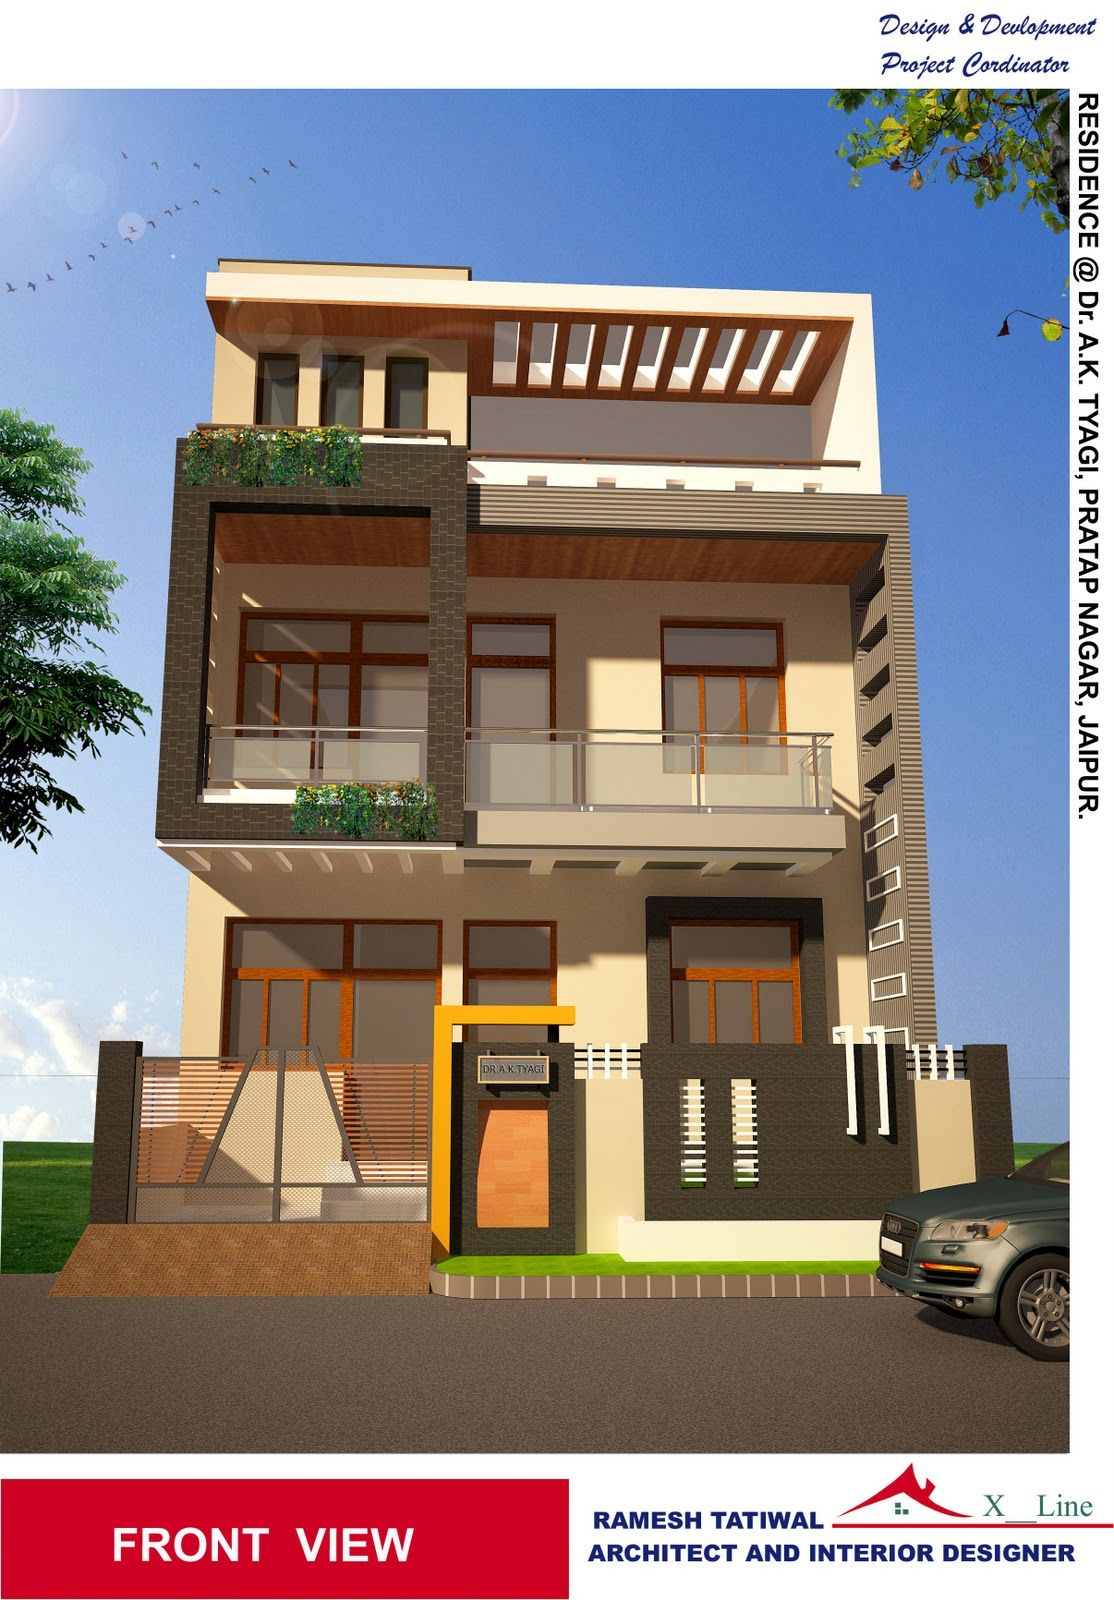 Housedesigns modern indian home architecture design from Indian small house exterior design